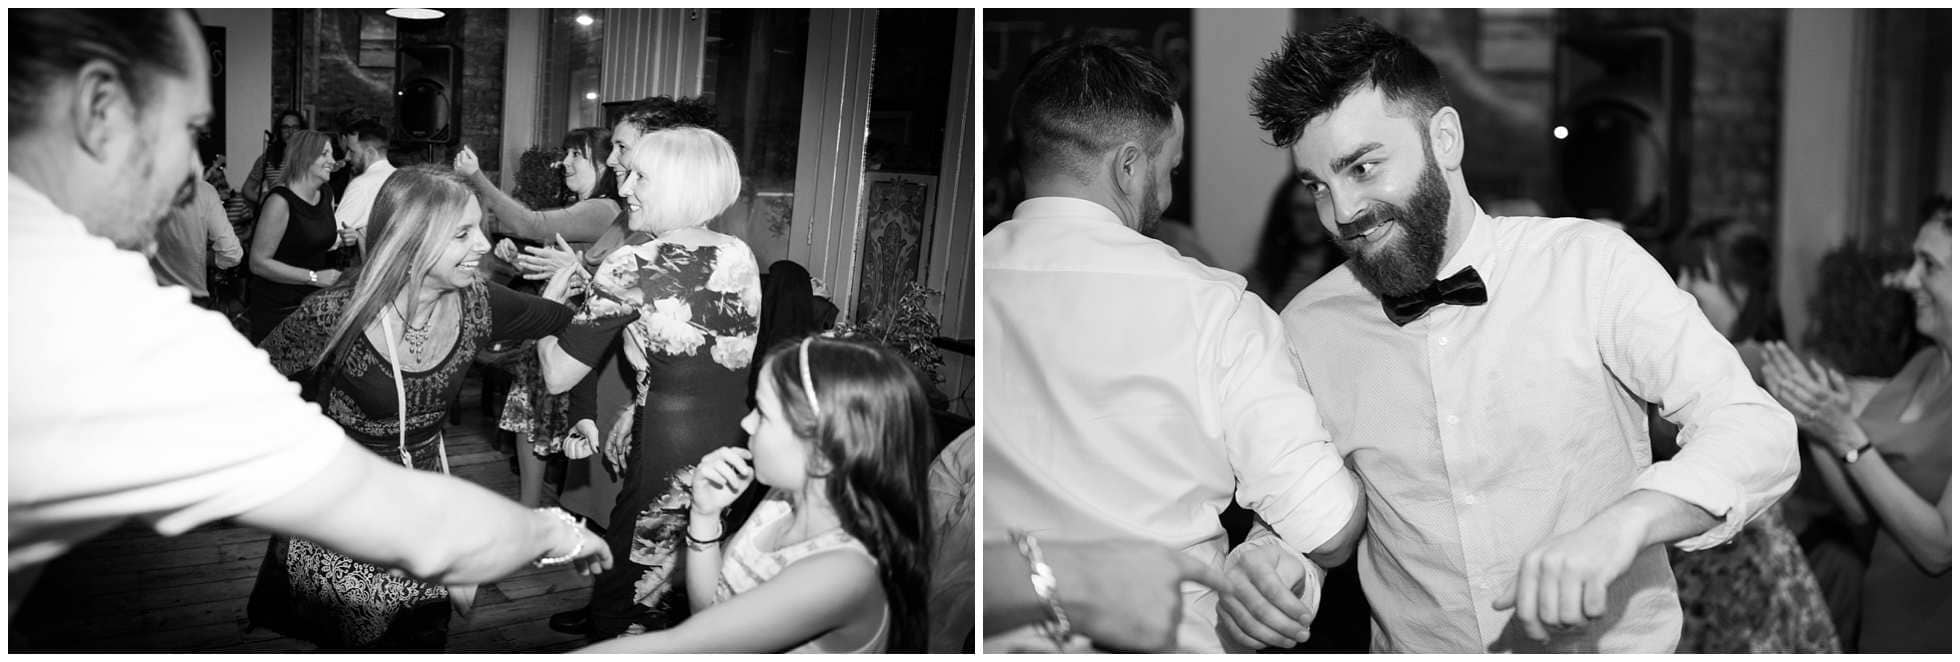 ceilidh dancing at the star london wedding photography